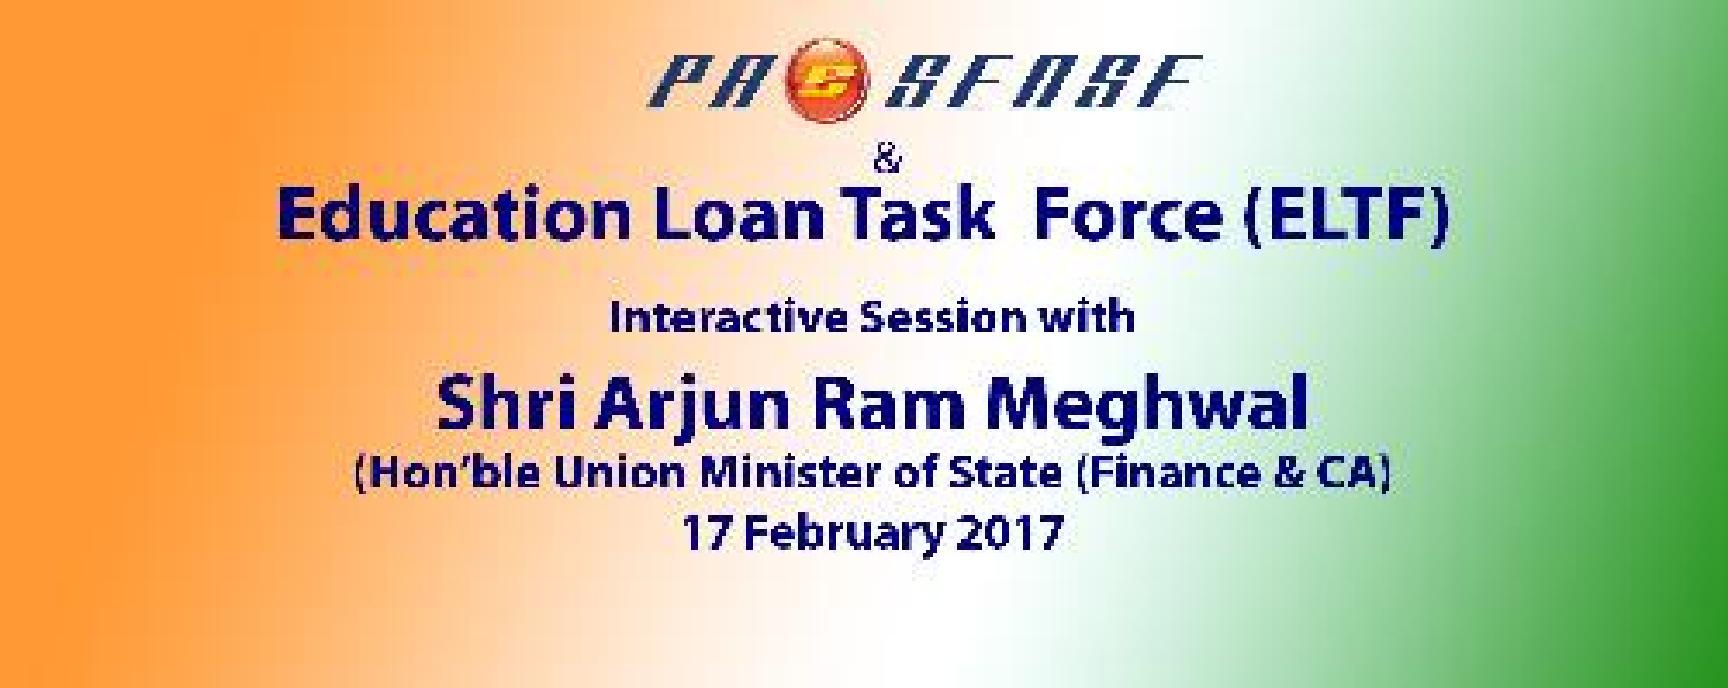 Education Loan and StandupIndia Loans - Interactive session with Shri Arjun Ram Meghwal, Honble MOS (Finance)